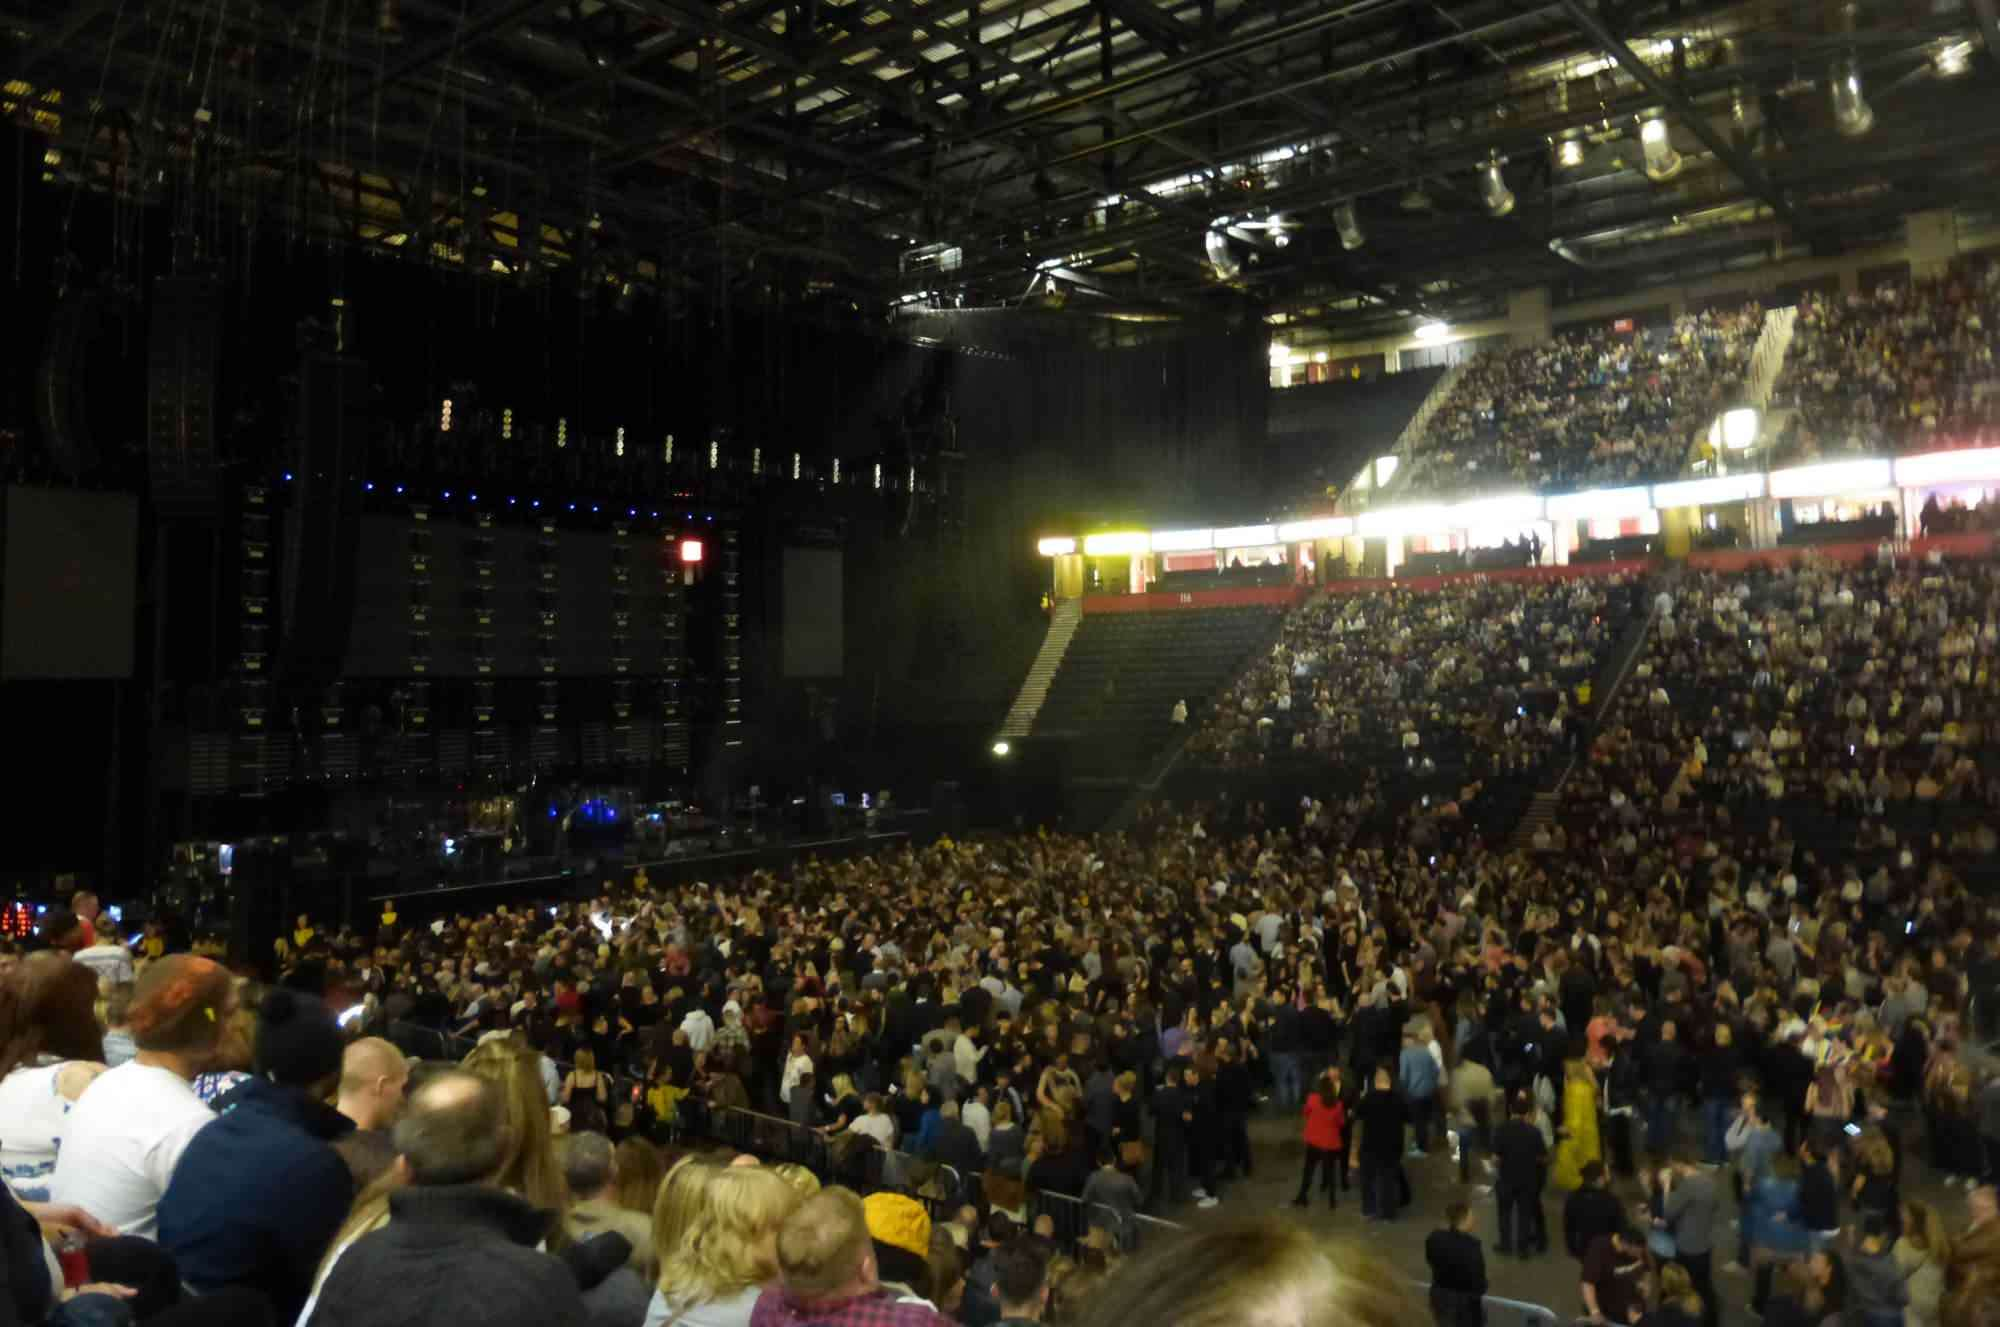 View from Seat Block 104 at Manchester Arena